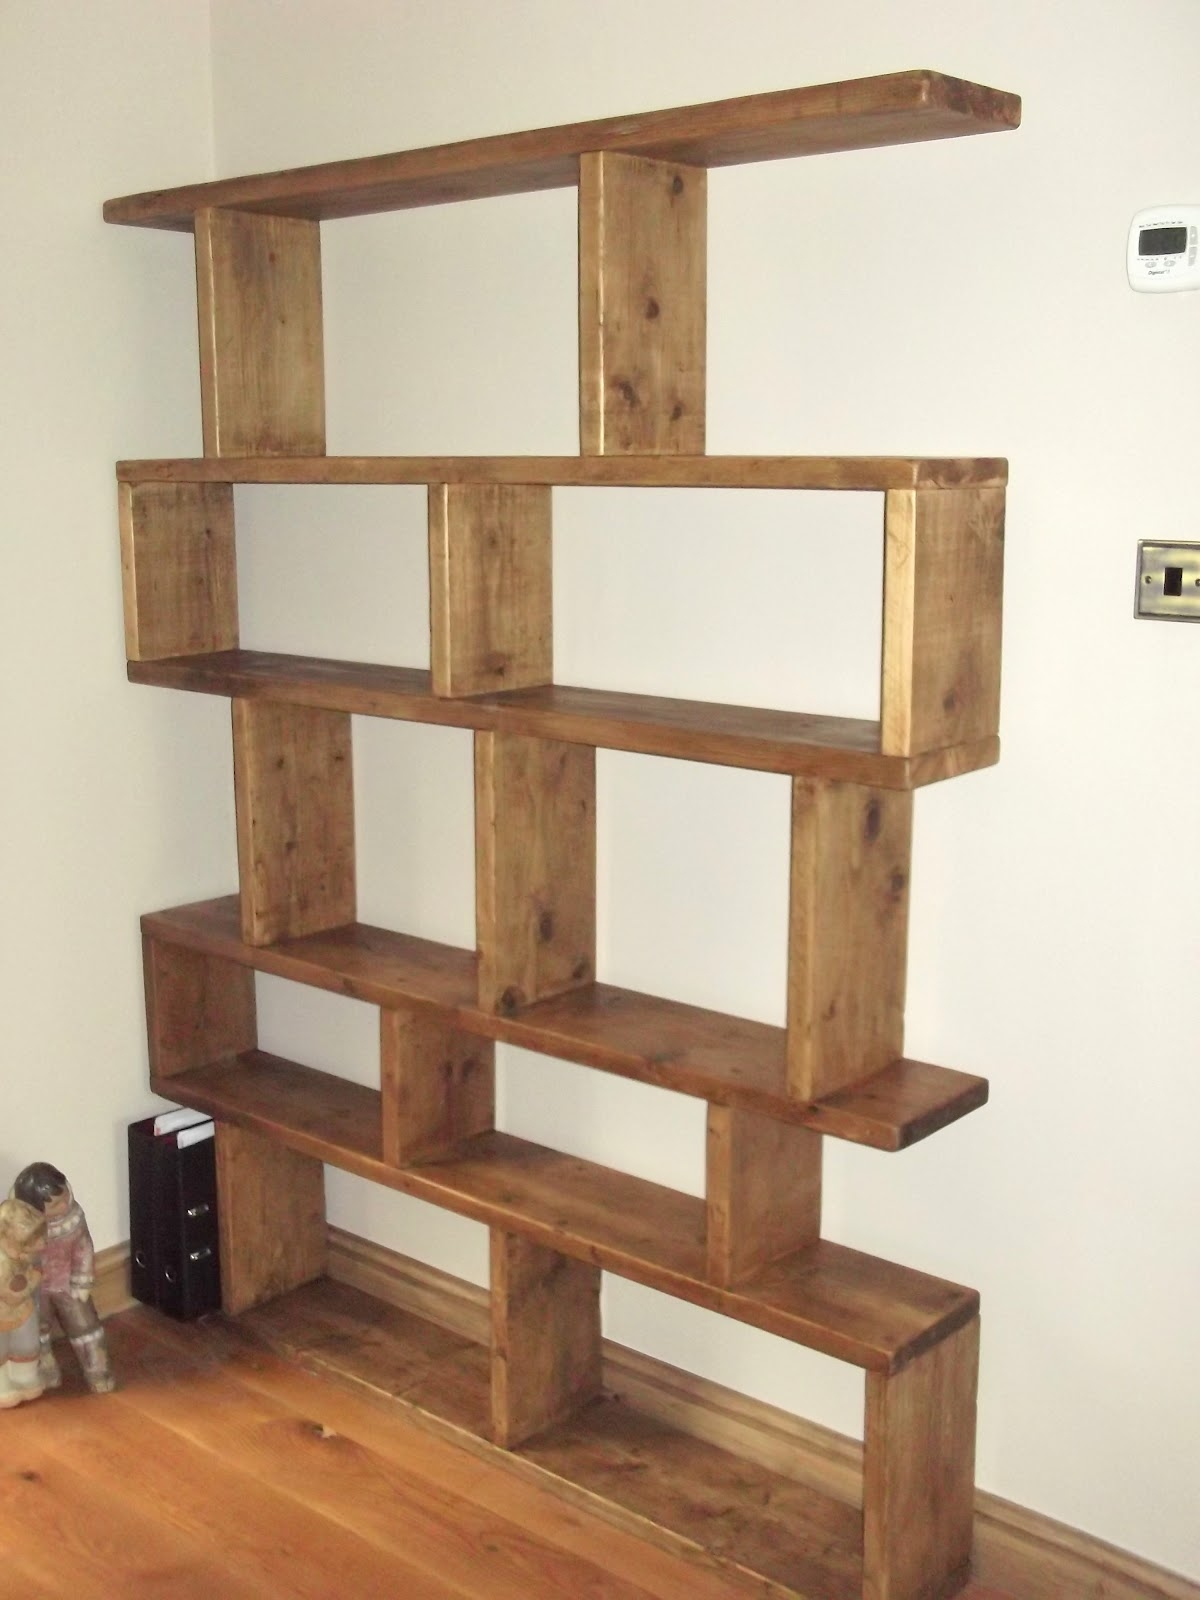 Popular Photo of Freestanding Bookshelves